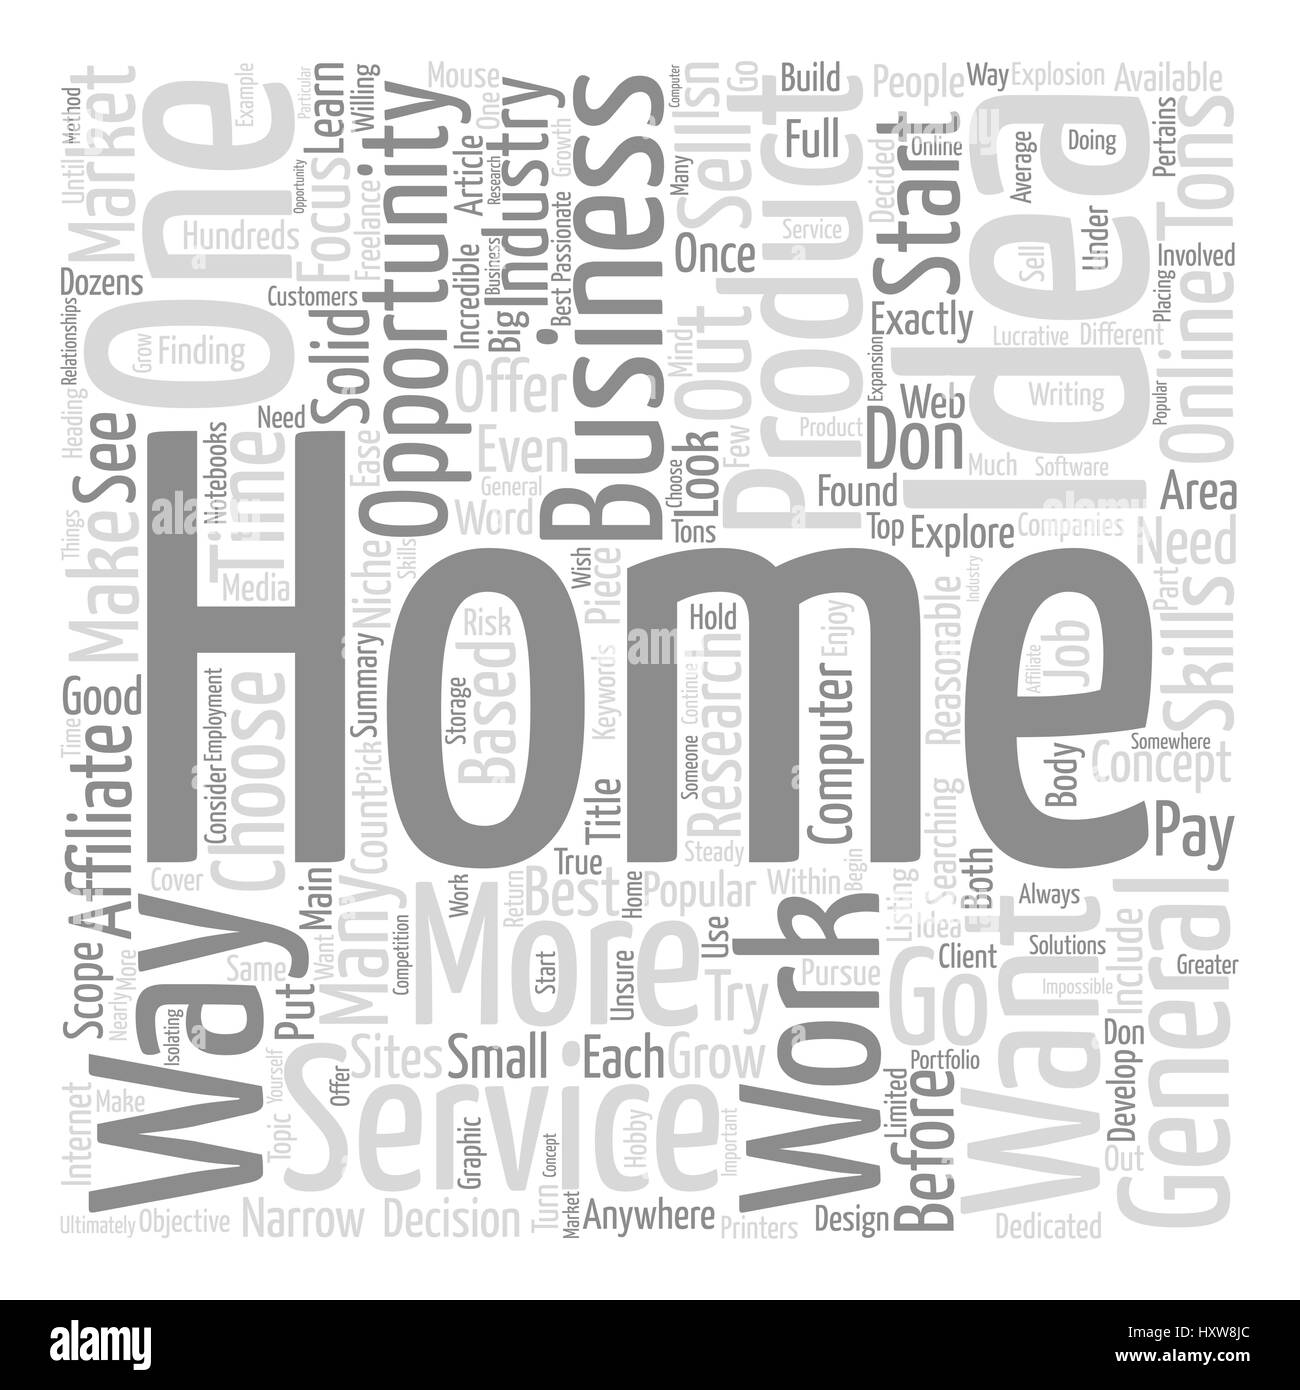 Work Home Opportunities Word Cloud Stock Photos & Work Home ...